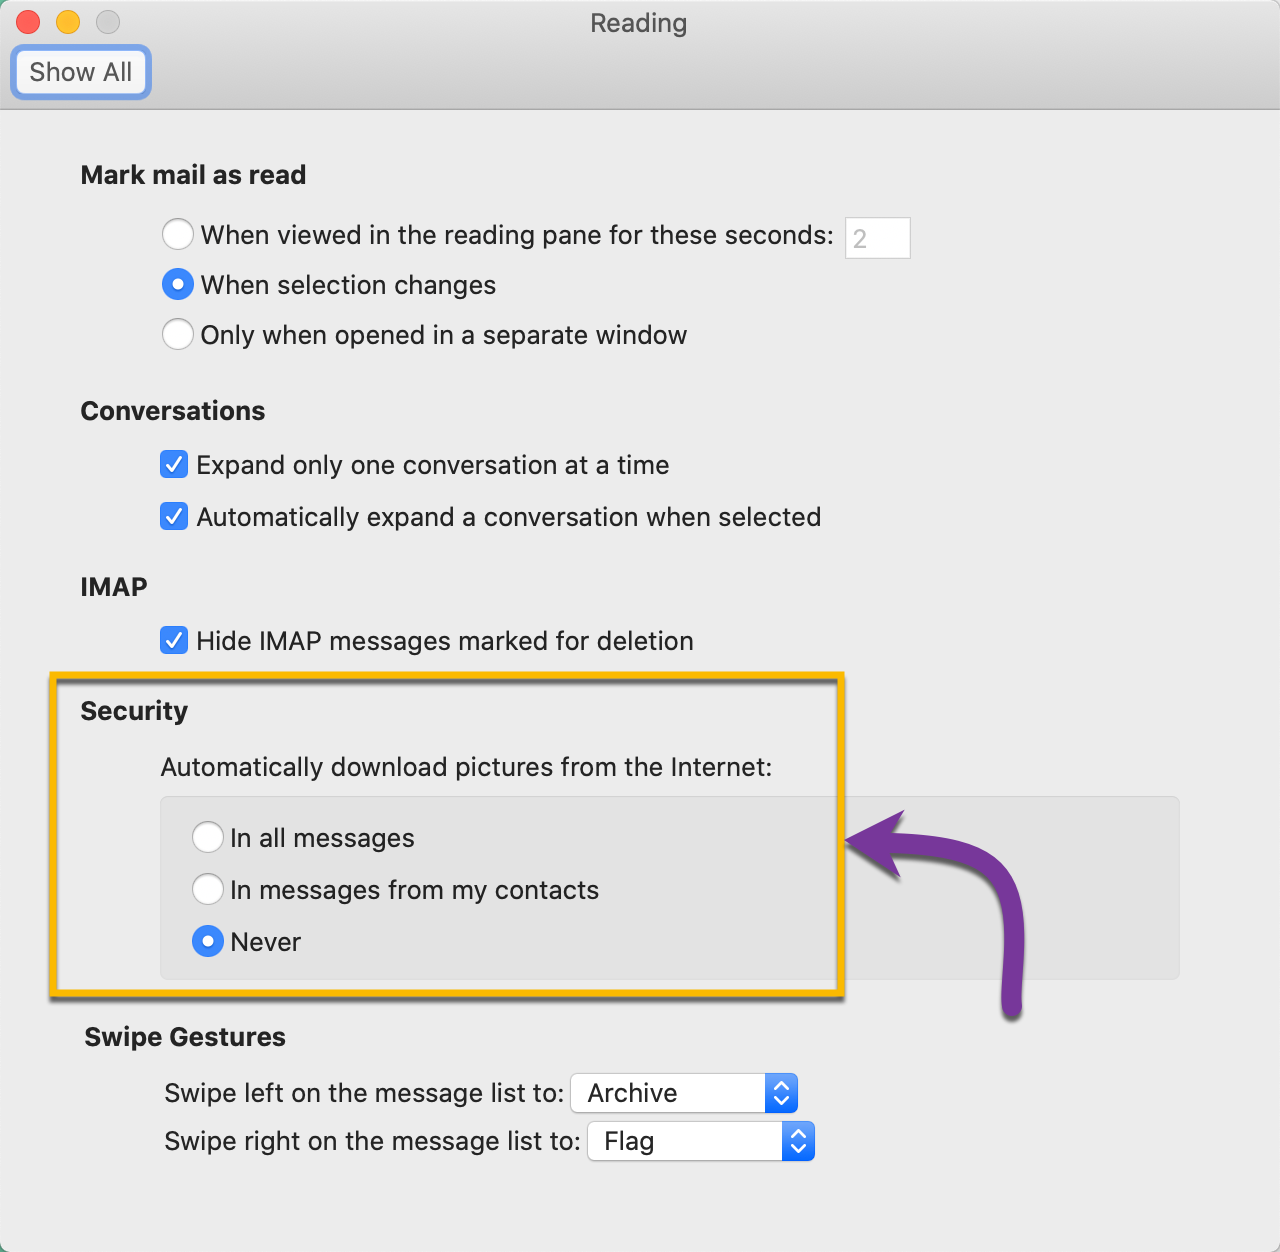 Changing the security setting in your preferences to allow for automatic picture downloads in emails